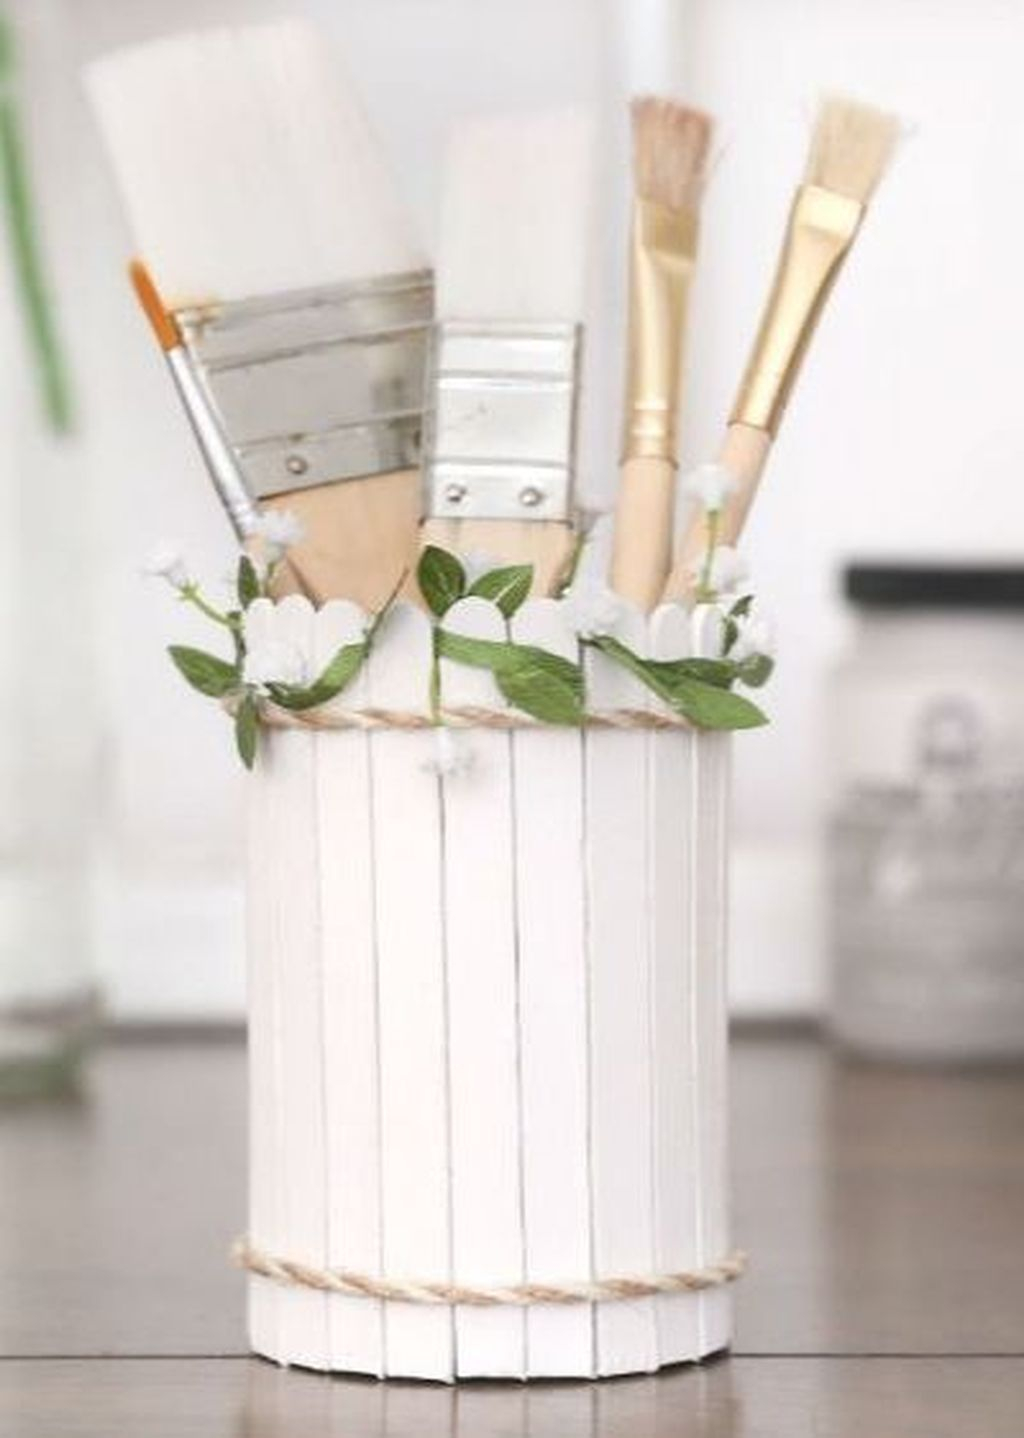 Gorgeous Diy Popsicle Stick Design Ideas For Home To Try Asap 24